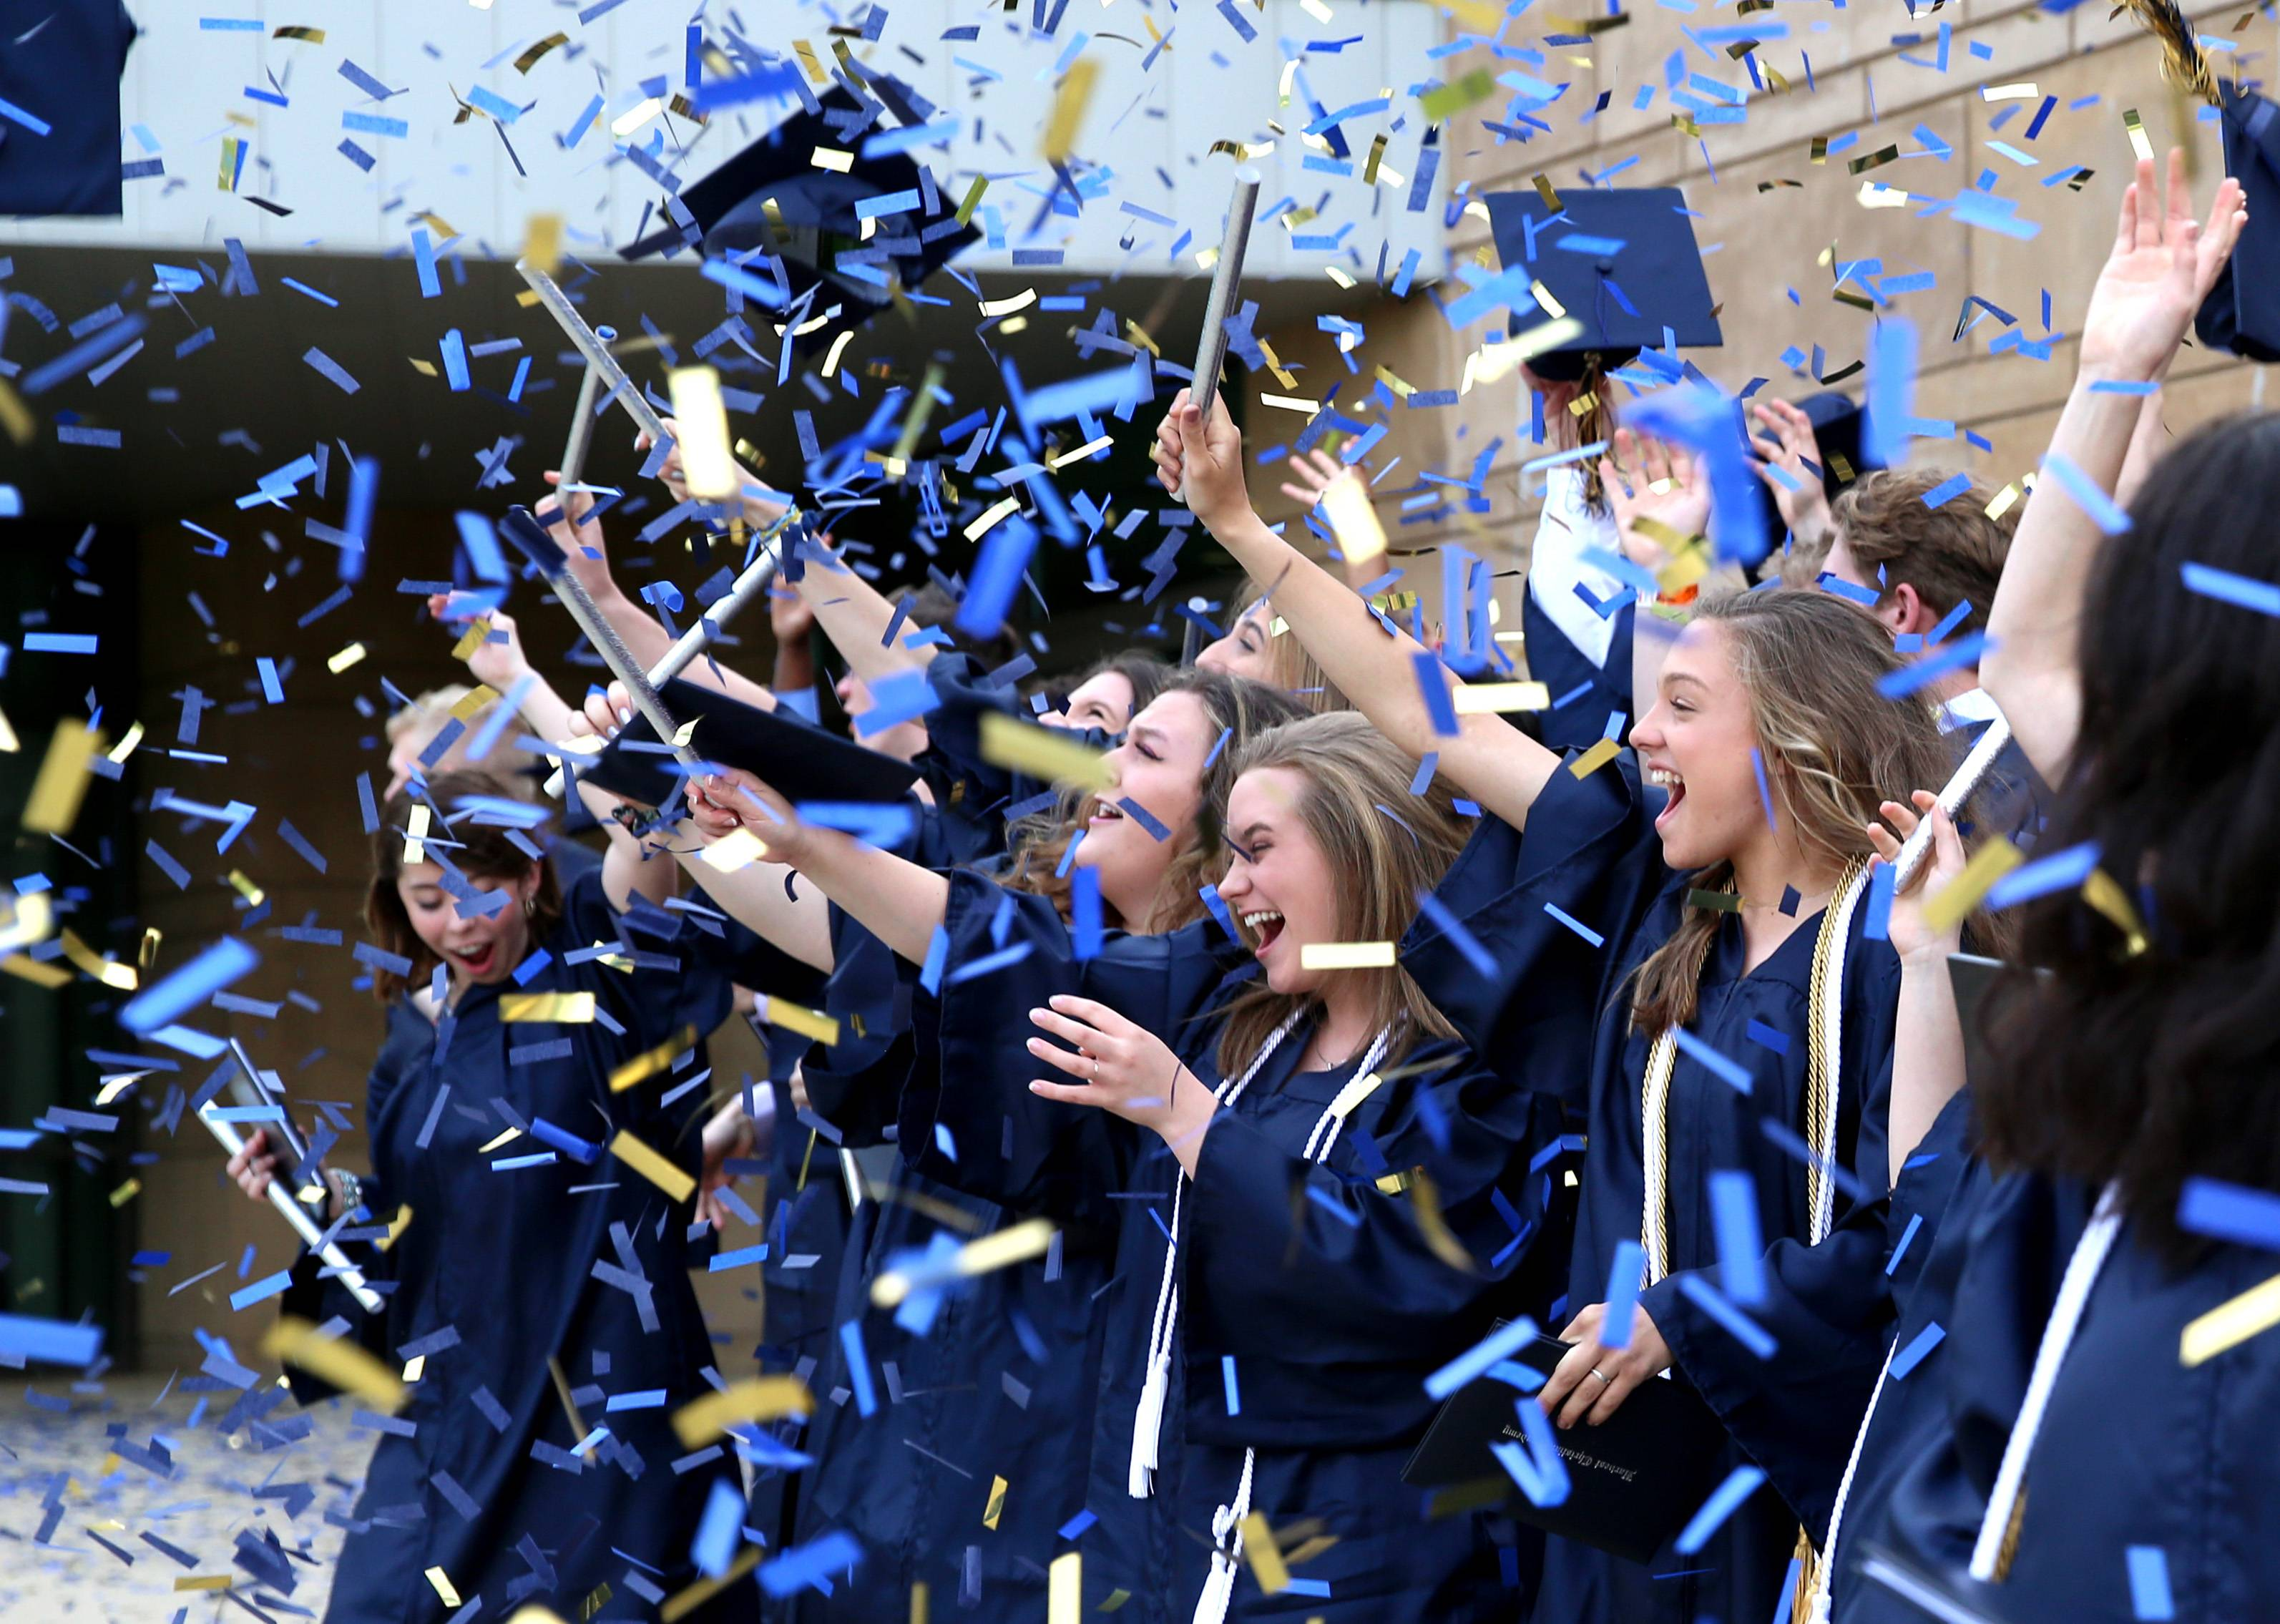 Graduates toss their caps amidst a confetti storm after Harvest Christian Academy graduation on Sunday, May 19, 2019 at the school campus in Elgin.